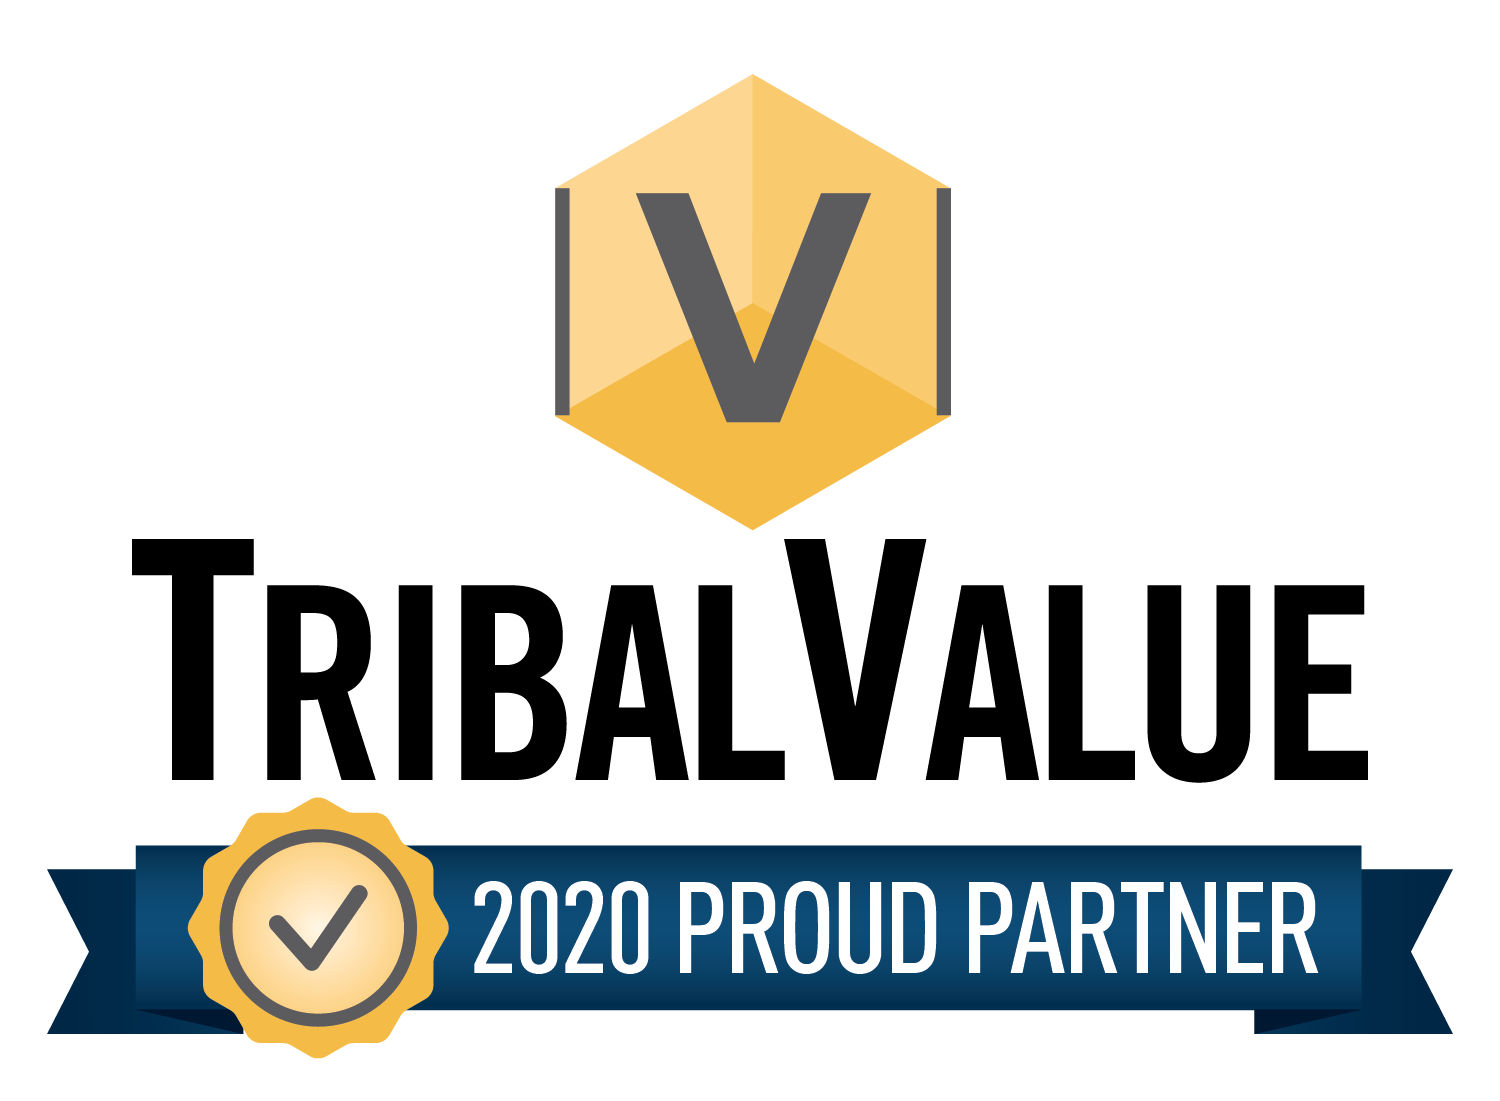 TValue_2020ProudPartnerLogo_highRes